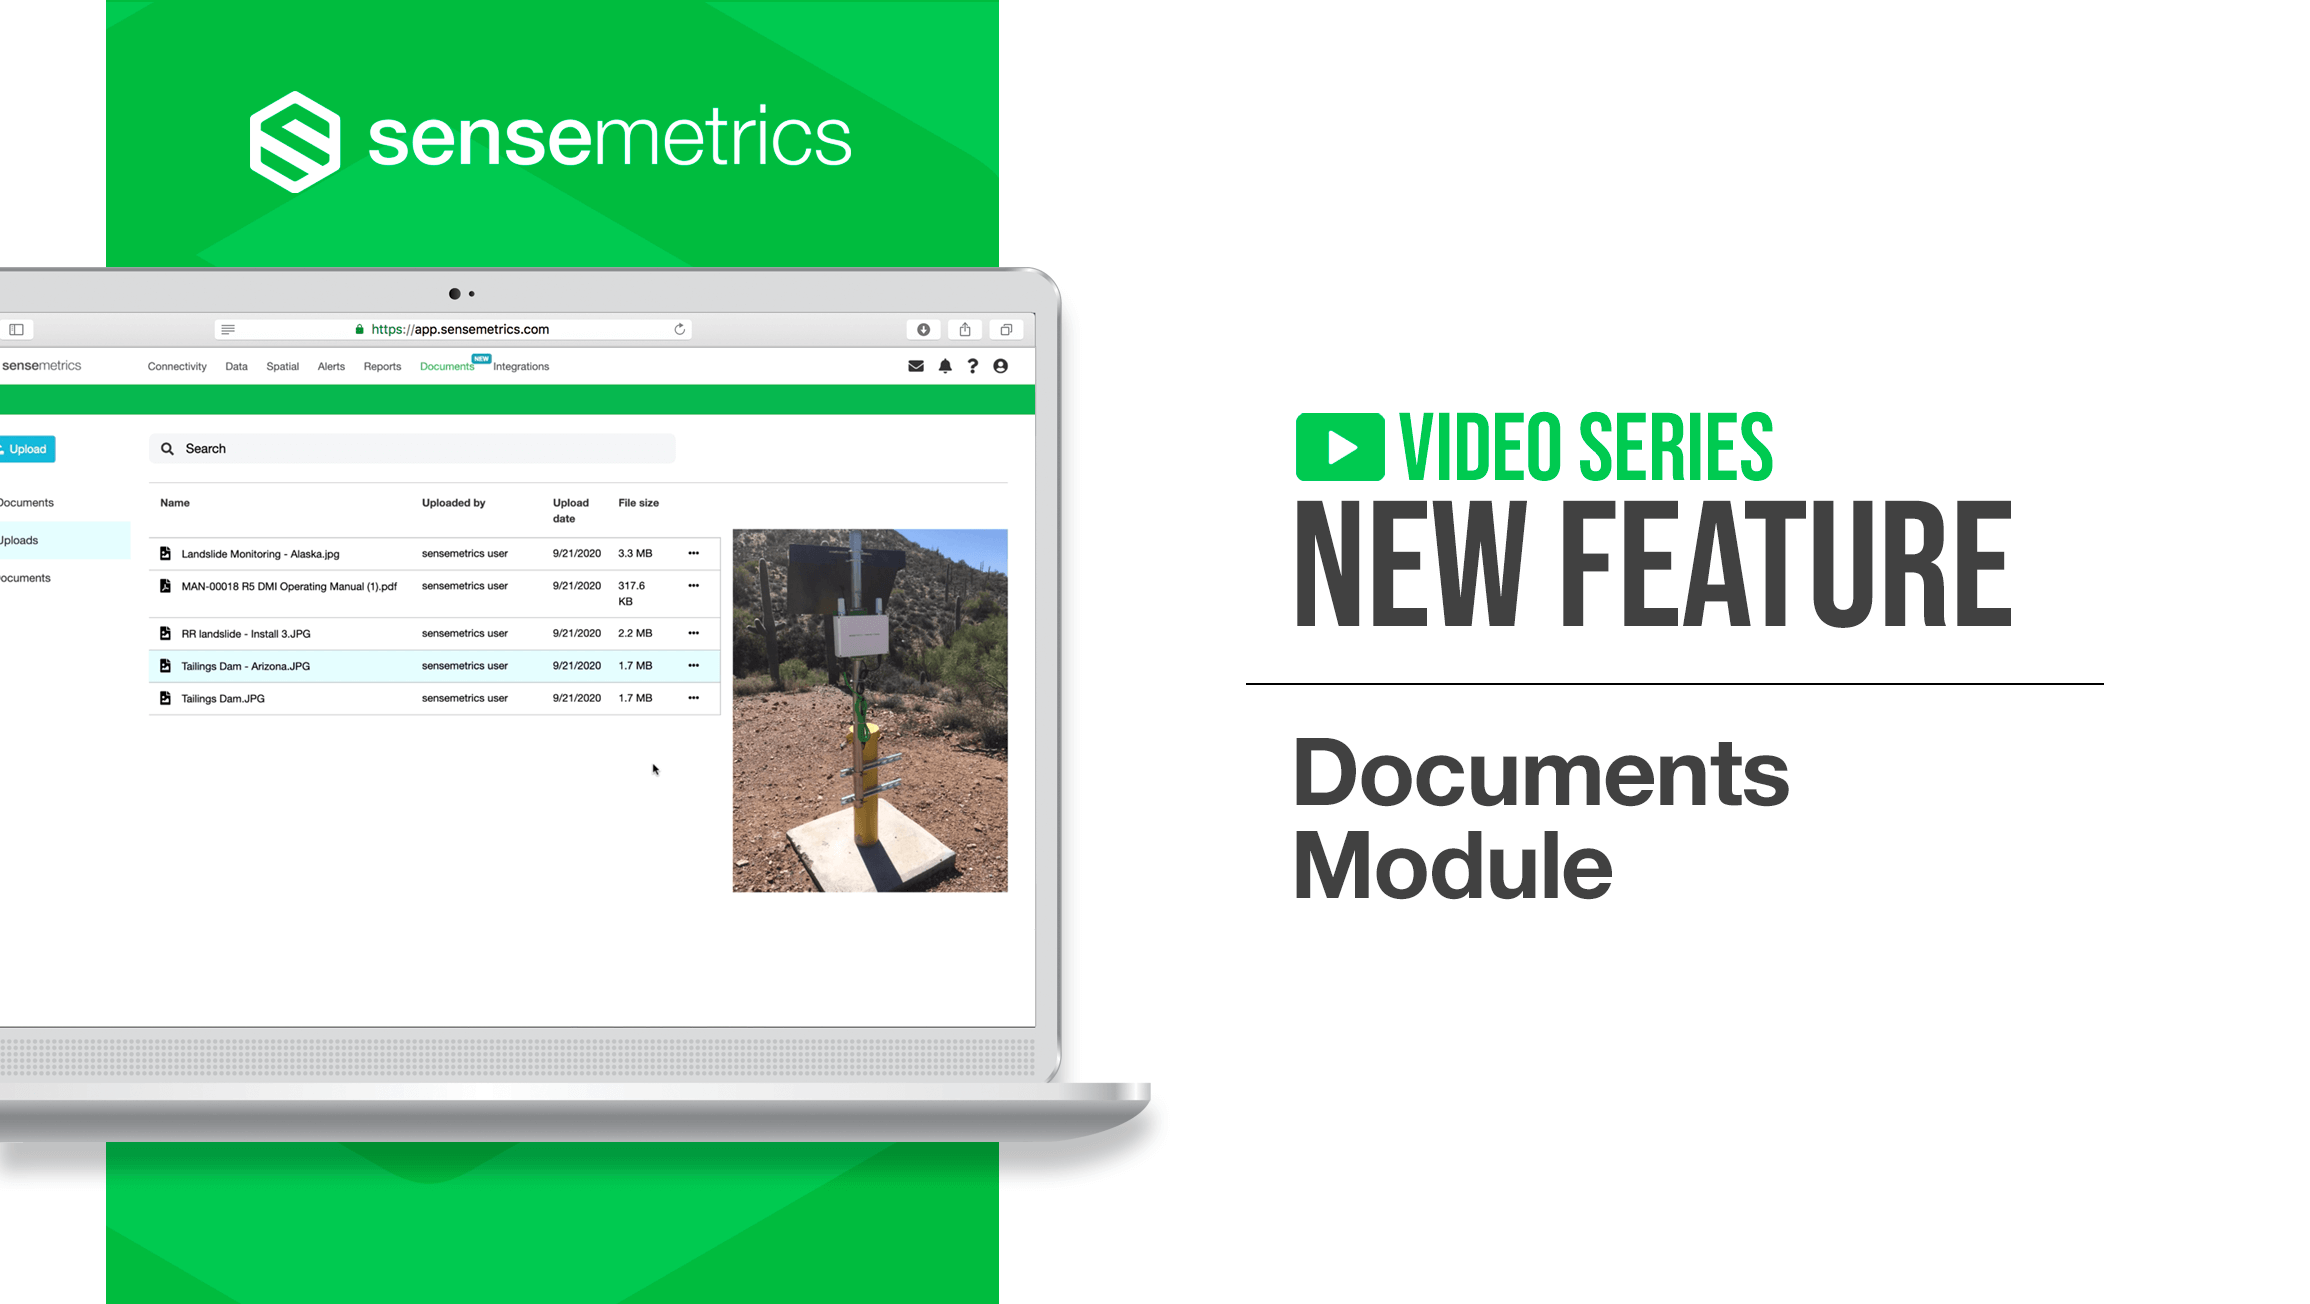 New Feature: Documents Module